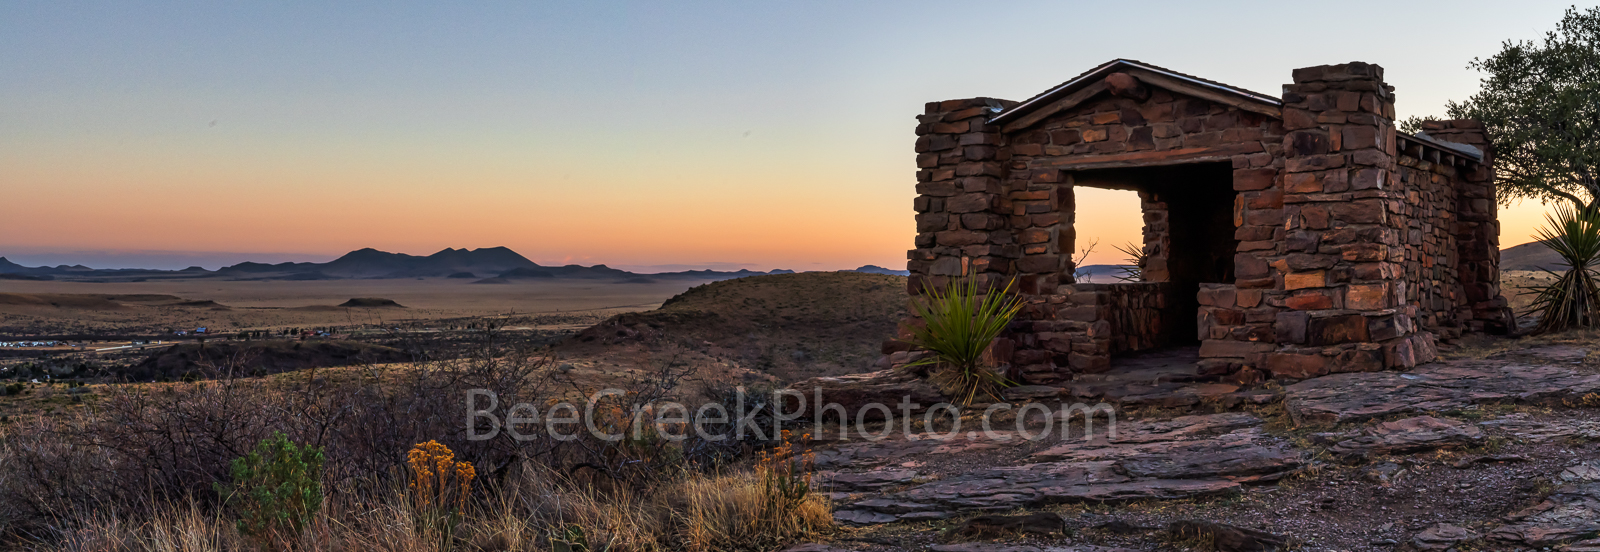 Davis Mountain Overlook, panorama, pano, sunset, colors, rock building, Texas landscape, mountain, Davis Mountain State Park, dusk, violet colors, orange, pinks, west texas, texan, usa, American lands, photo